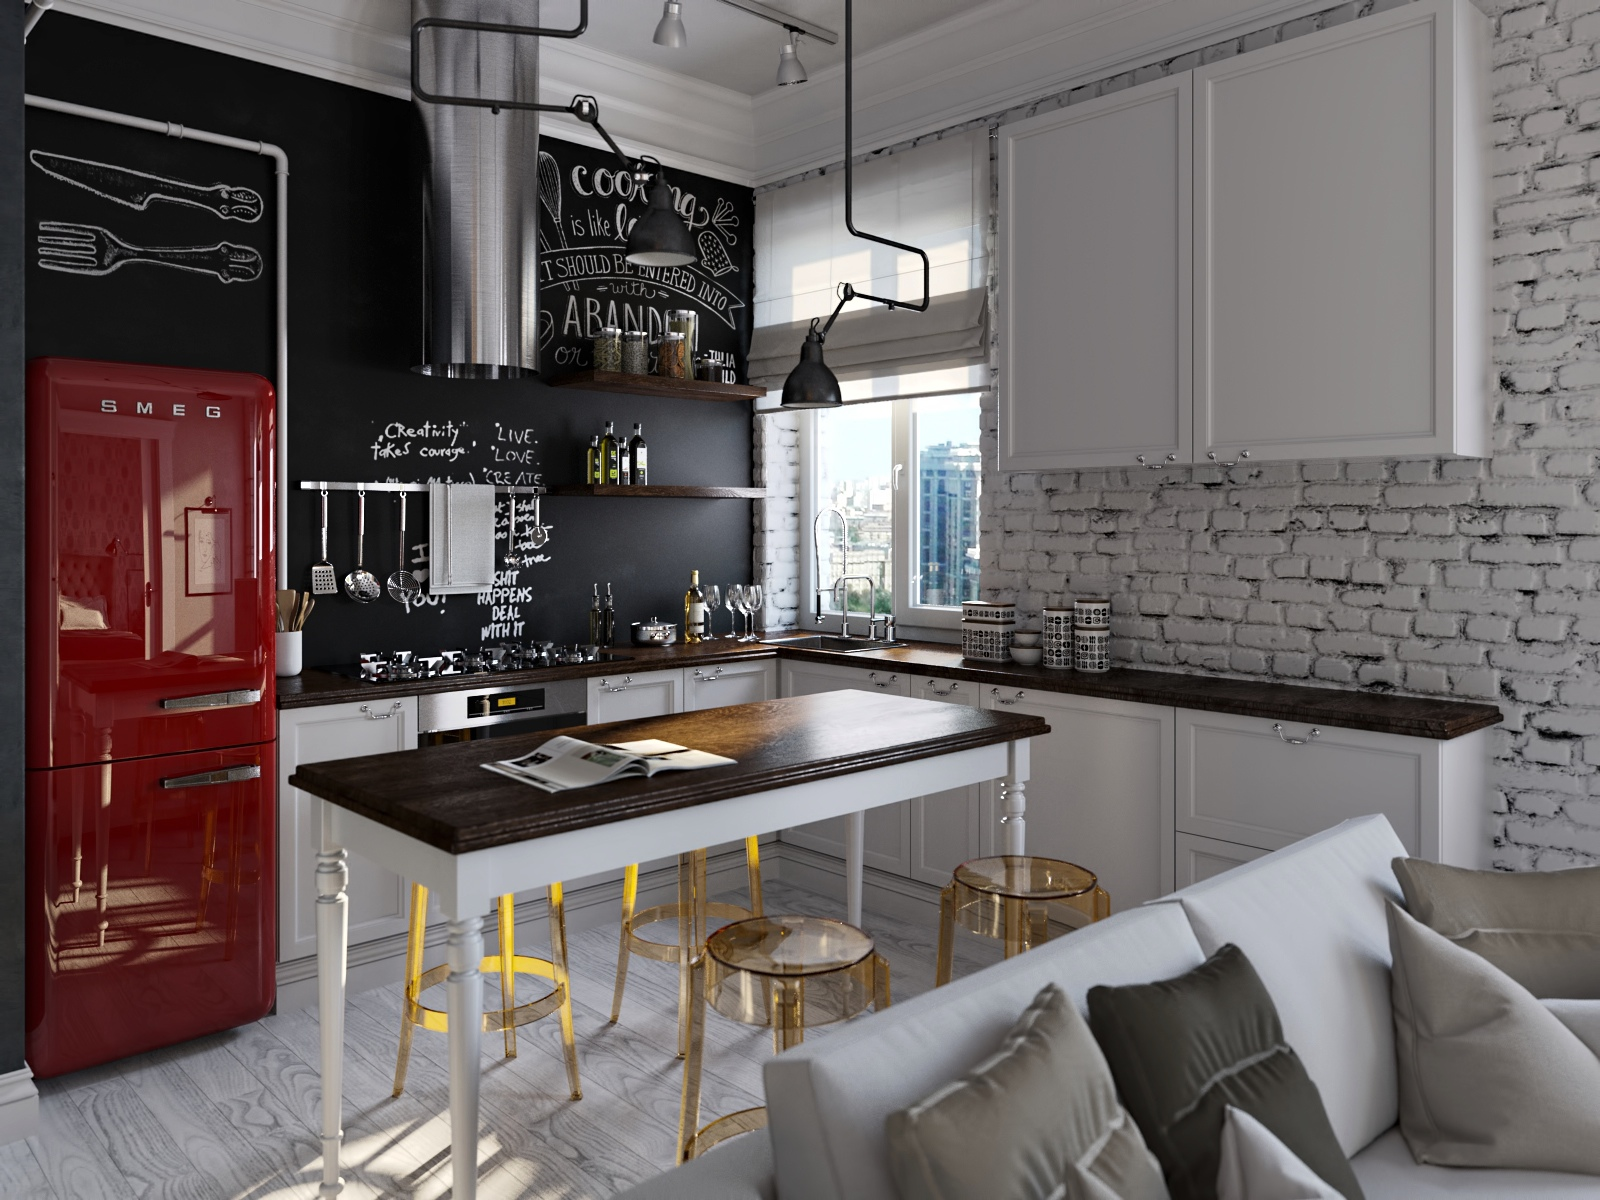 red smeg fridge interior design ideas